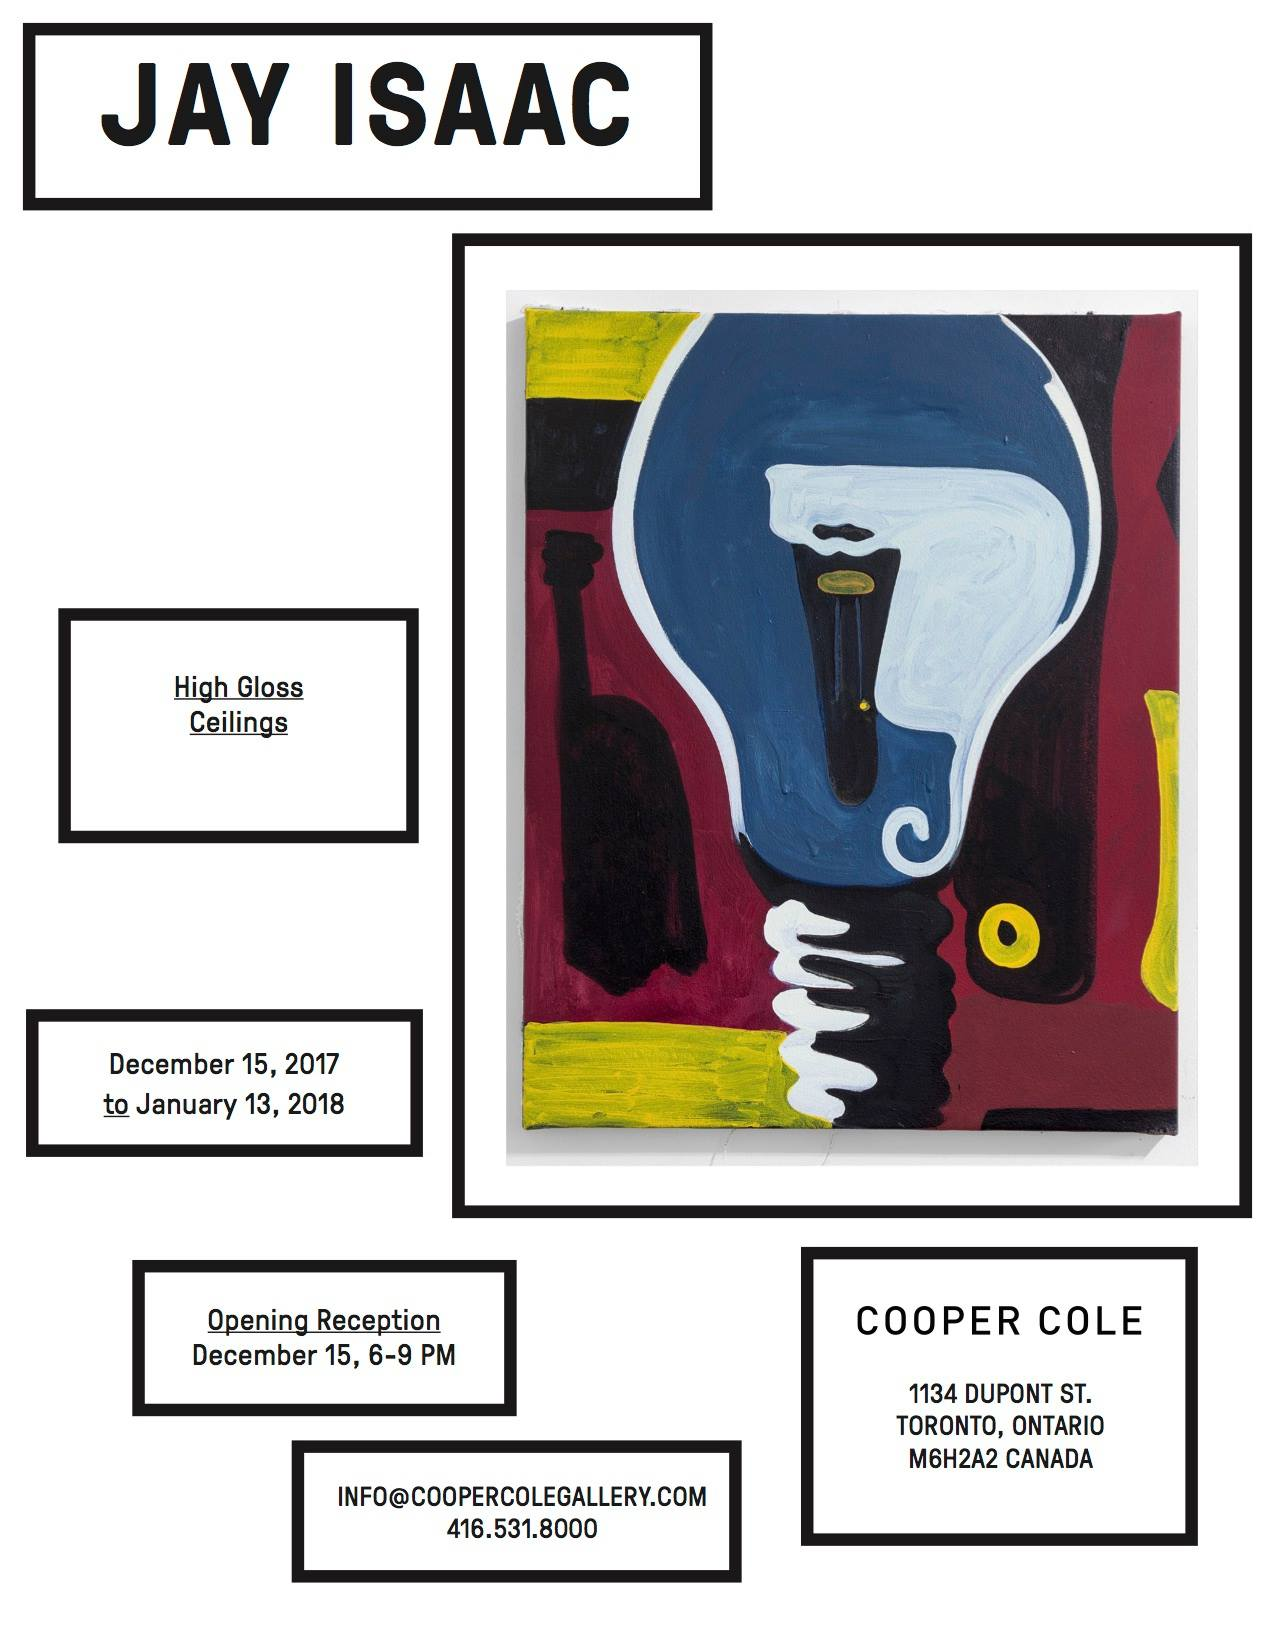 Jay Isaac: High Gloss Ceilings - Opening Reception @ COOPER COLE